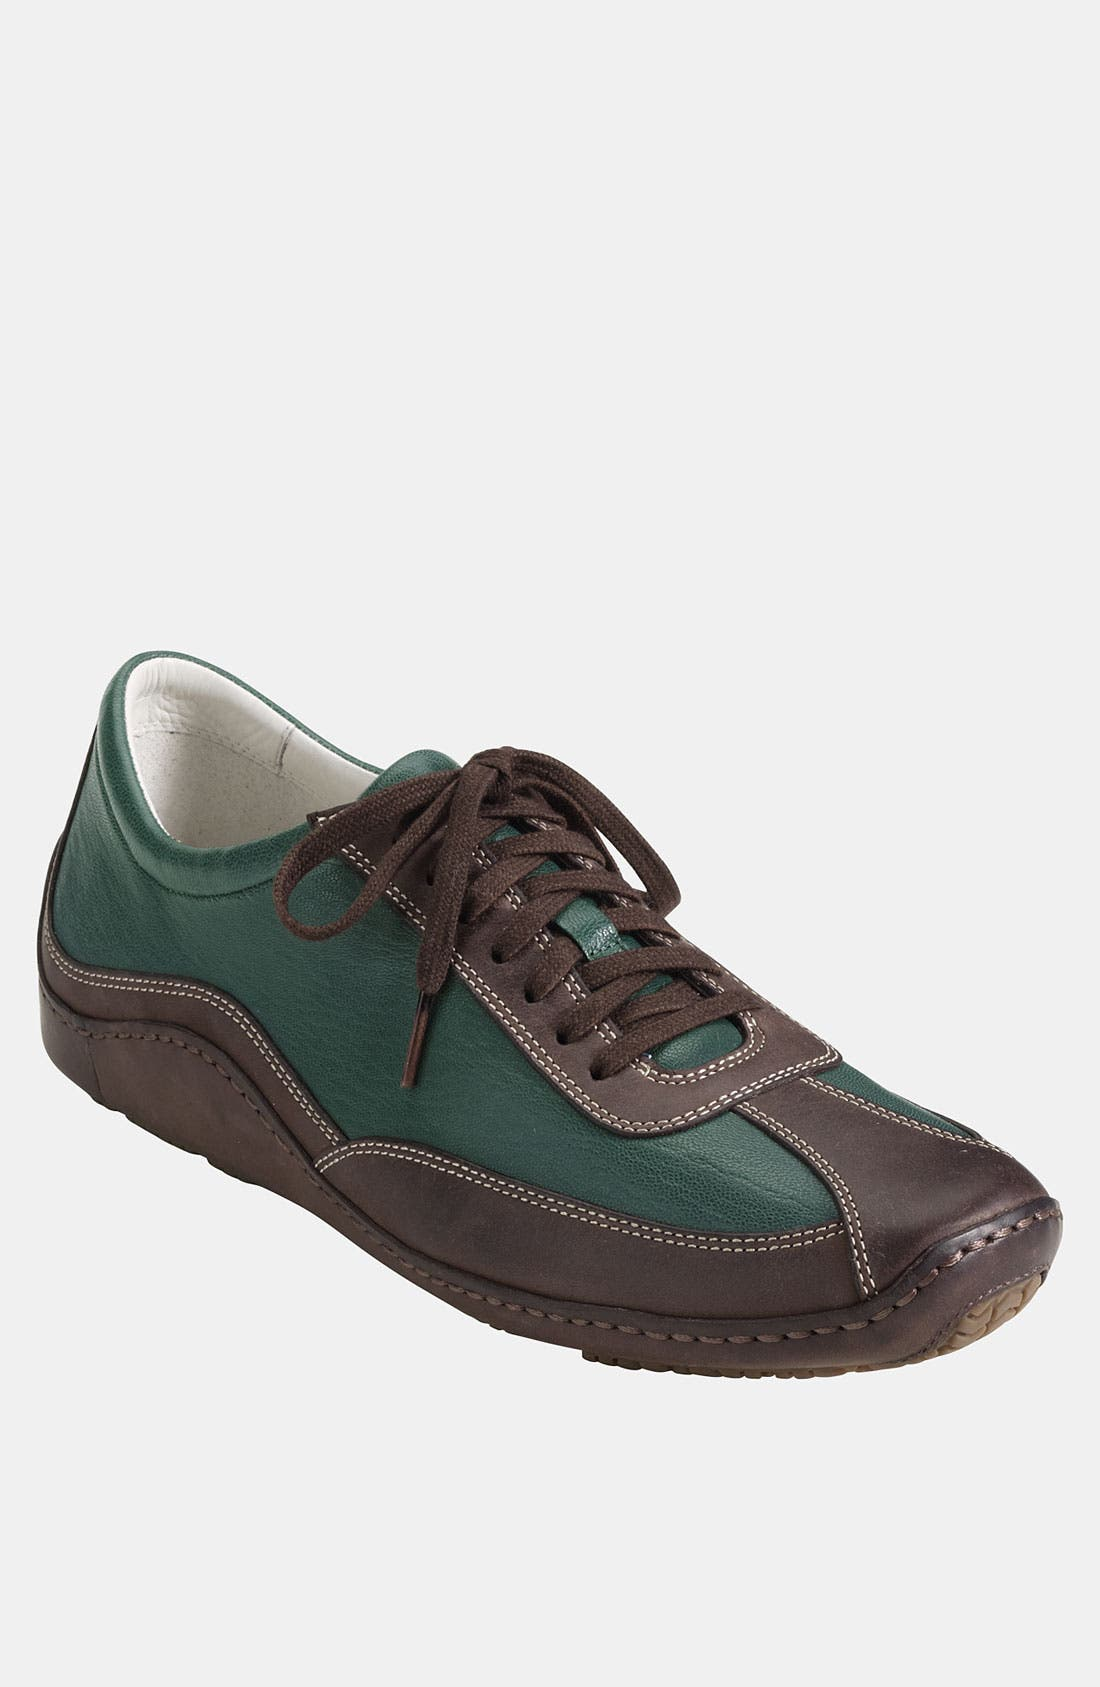 Main Image - Cole Haan 'Air Ryder' Driver Oxford